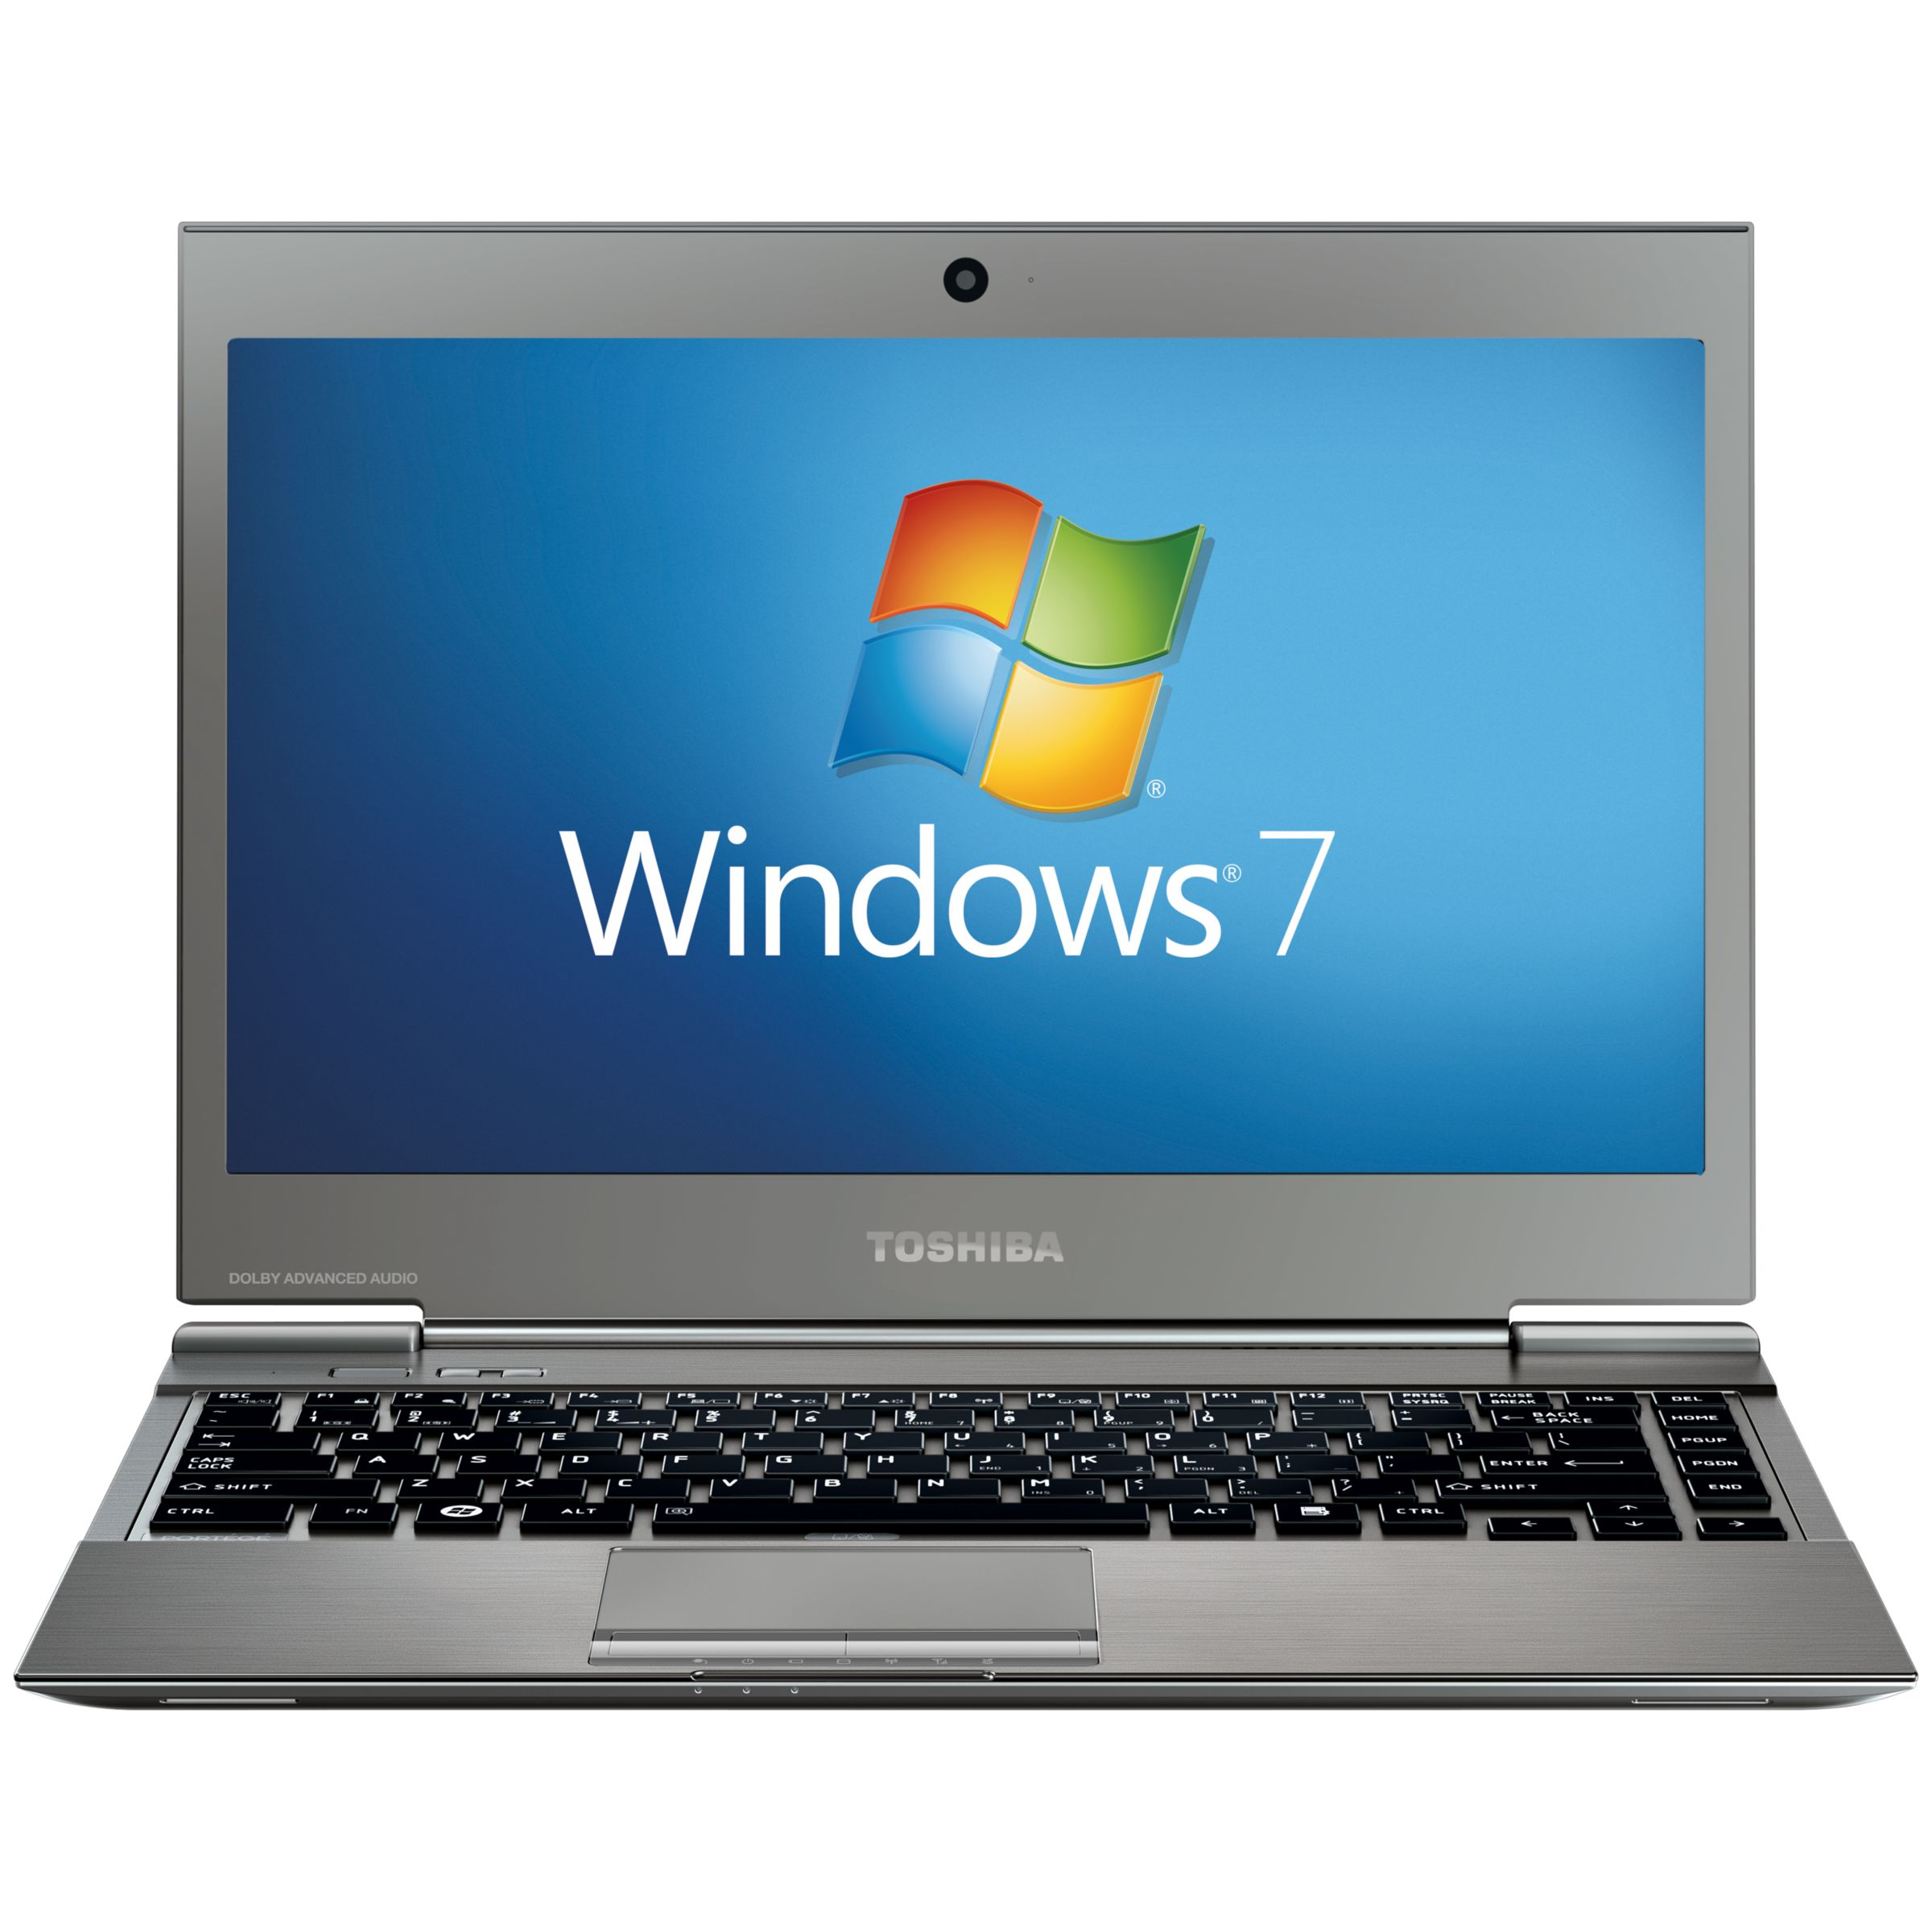 "Toshiba Satellite Z830-10t Ultrabook Laptop, Intel Core I3, 1, 4ghz, 4gb, 128gb Ssd With 13.3"" Screen"